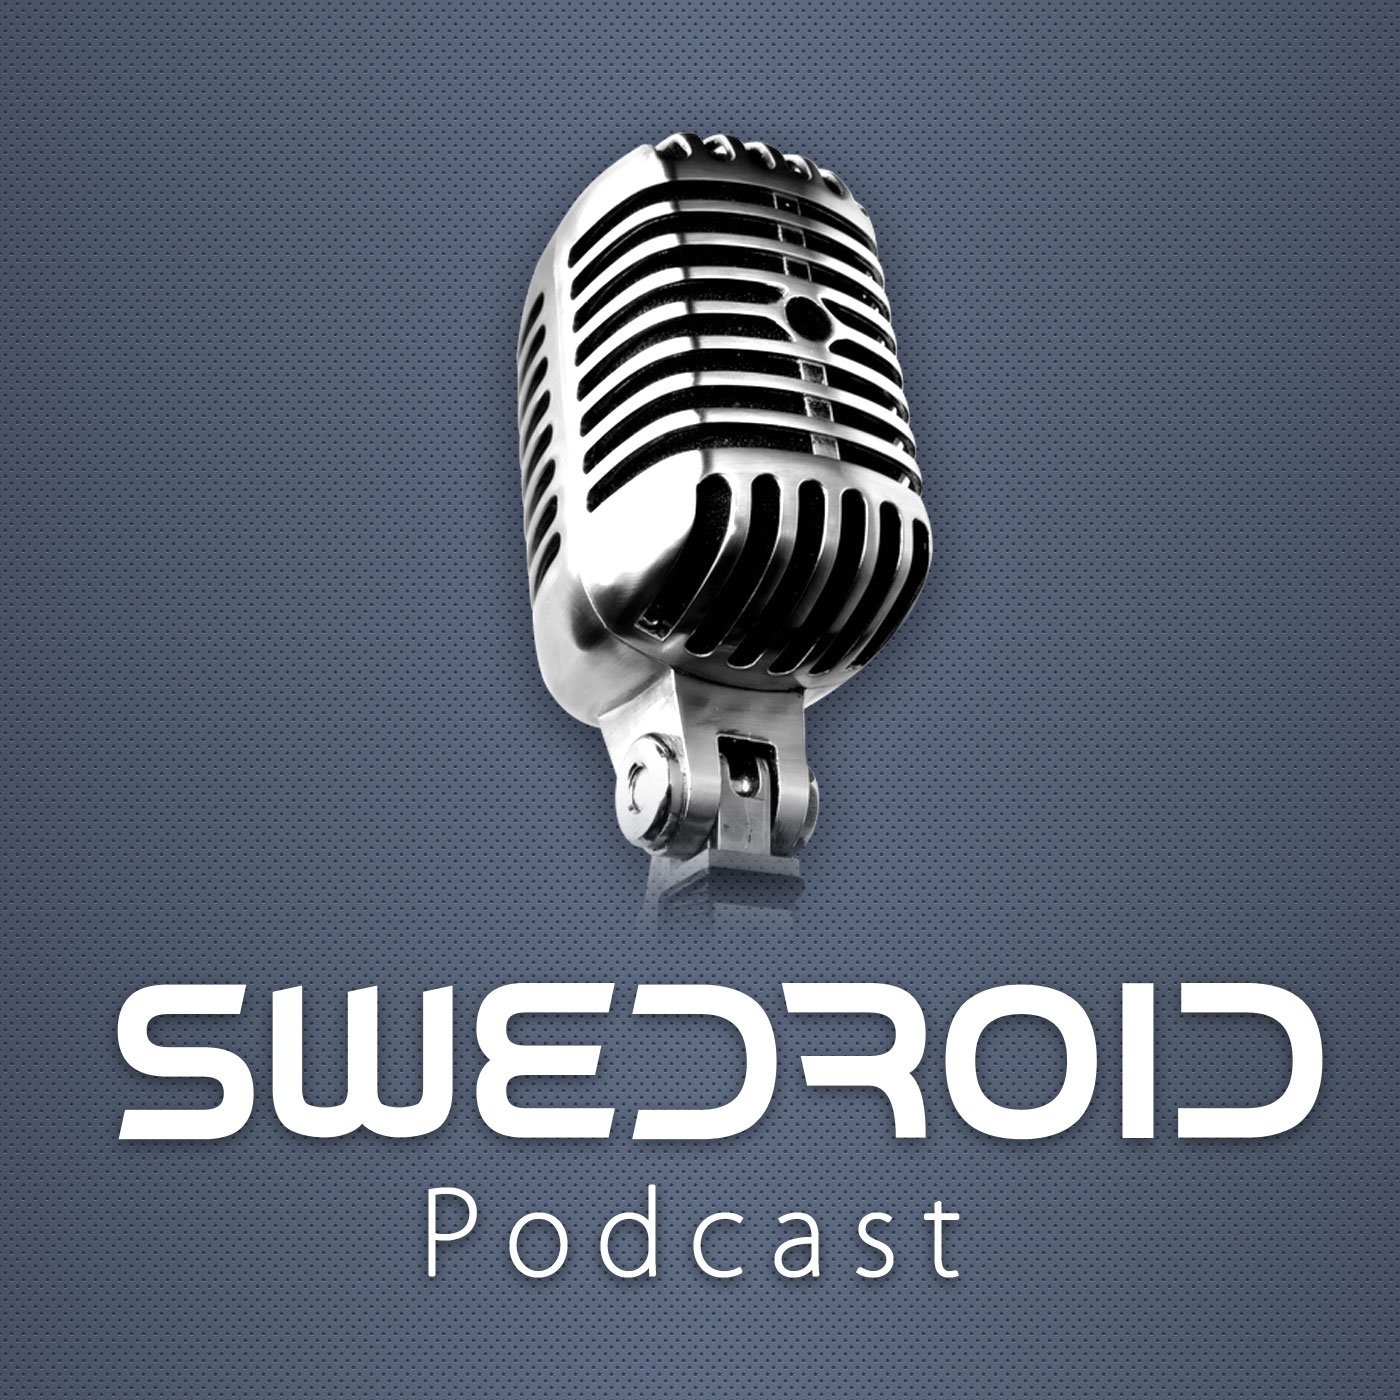 Swedroid Podcast